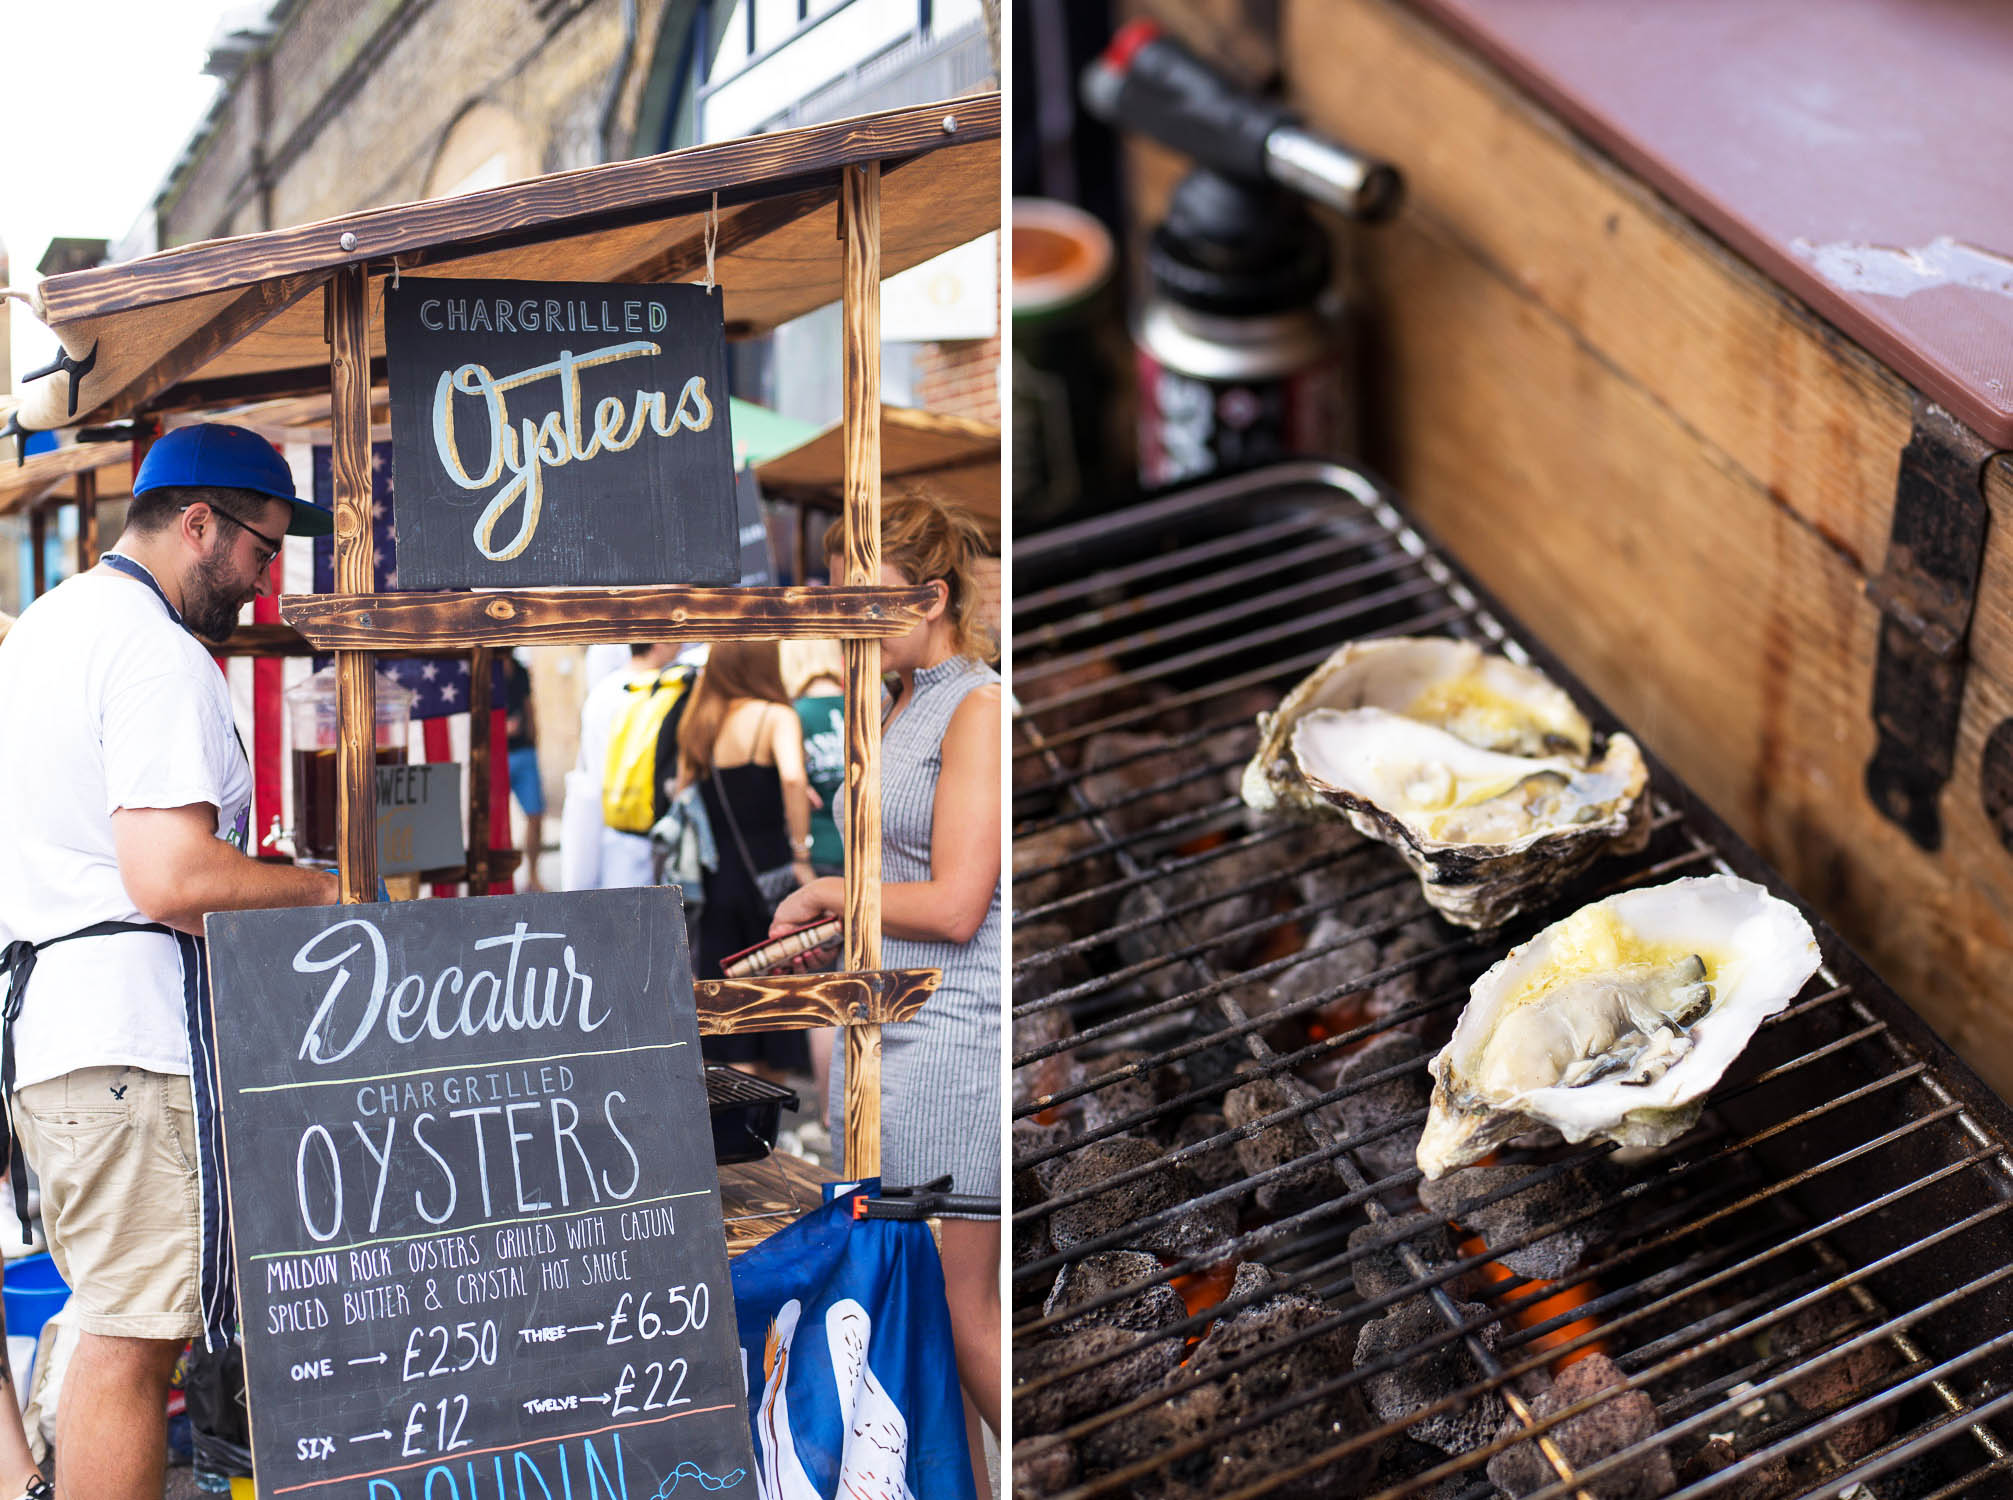 Druid-Street-Market-London-Oysters